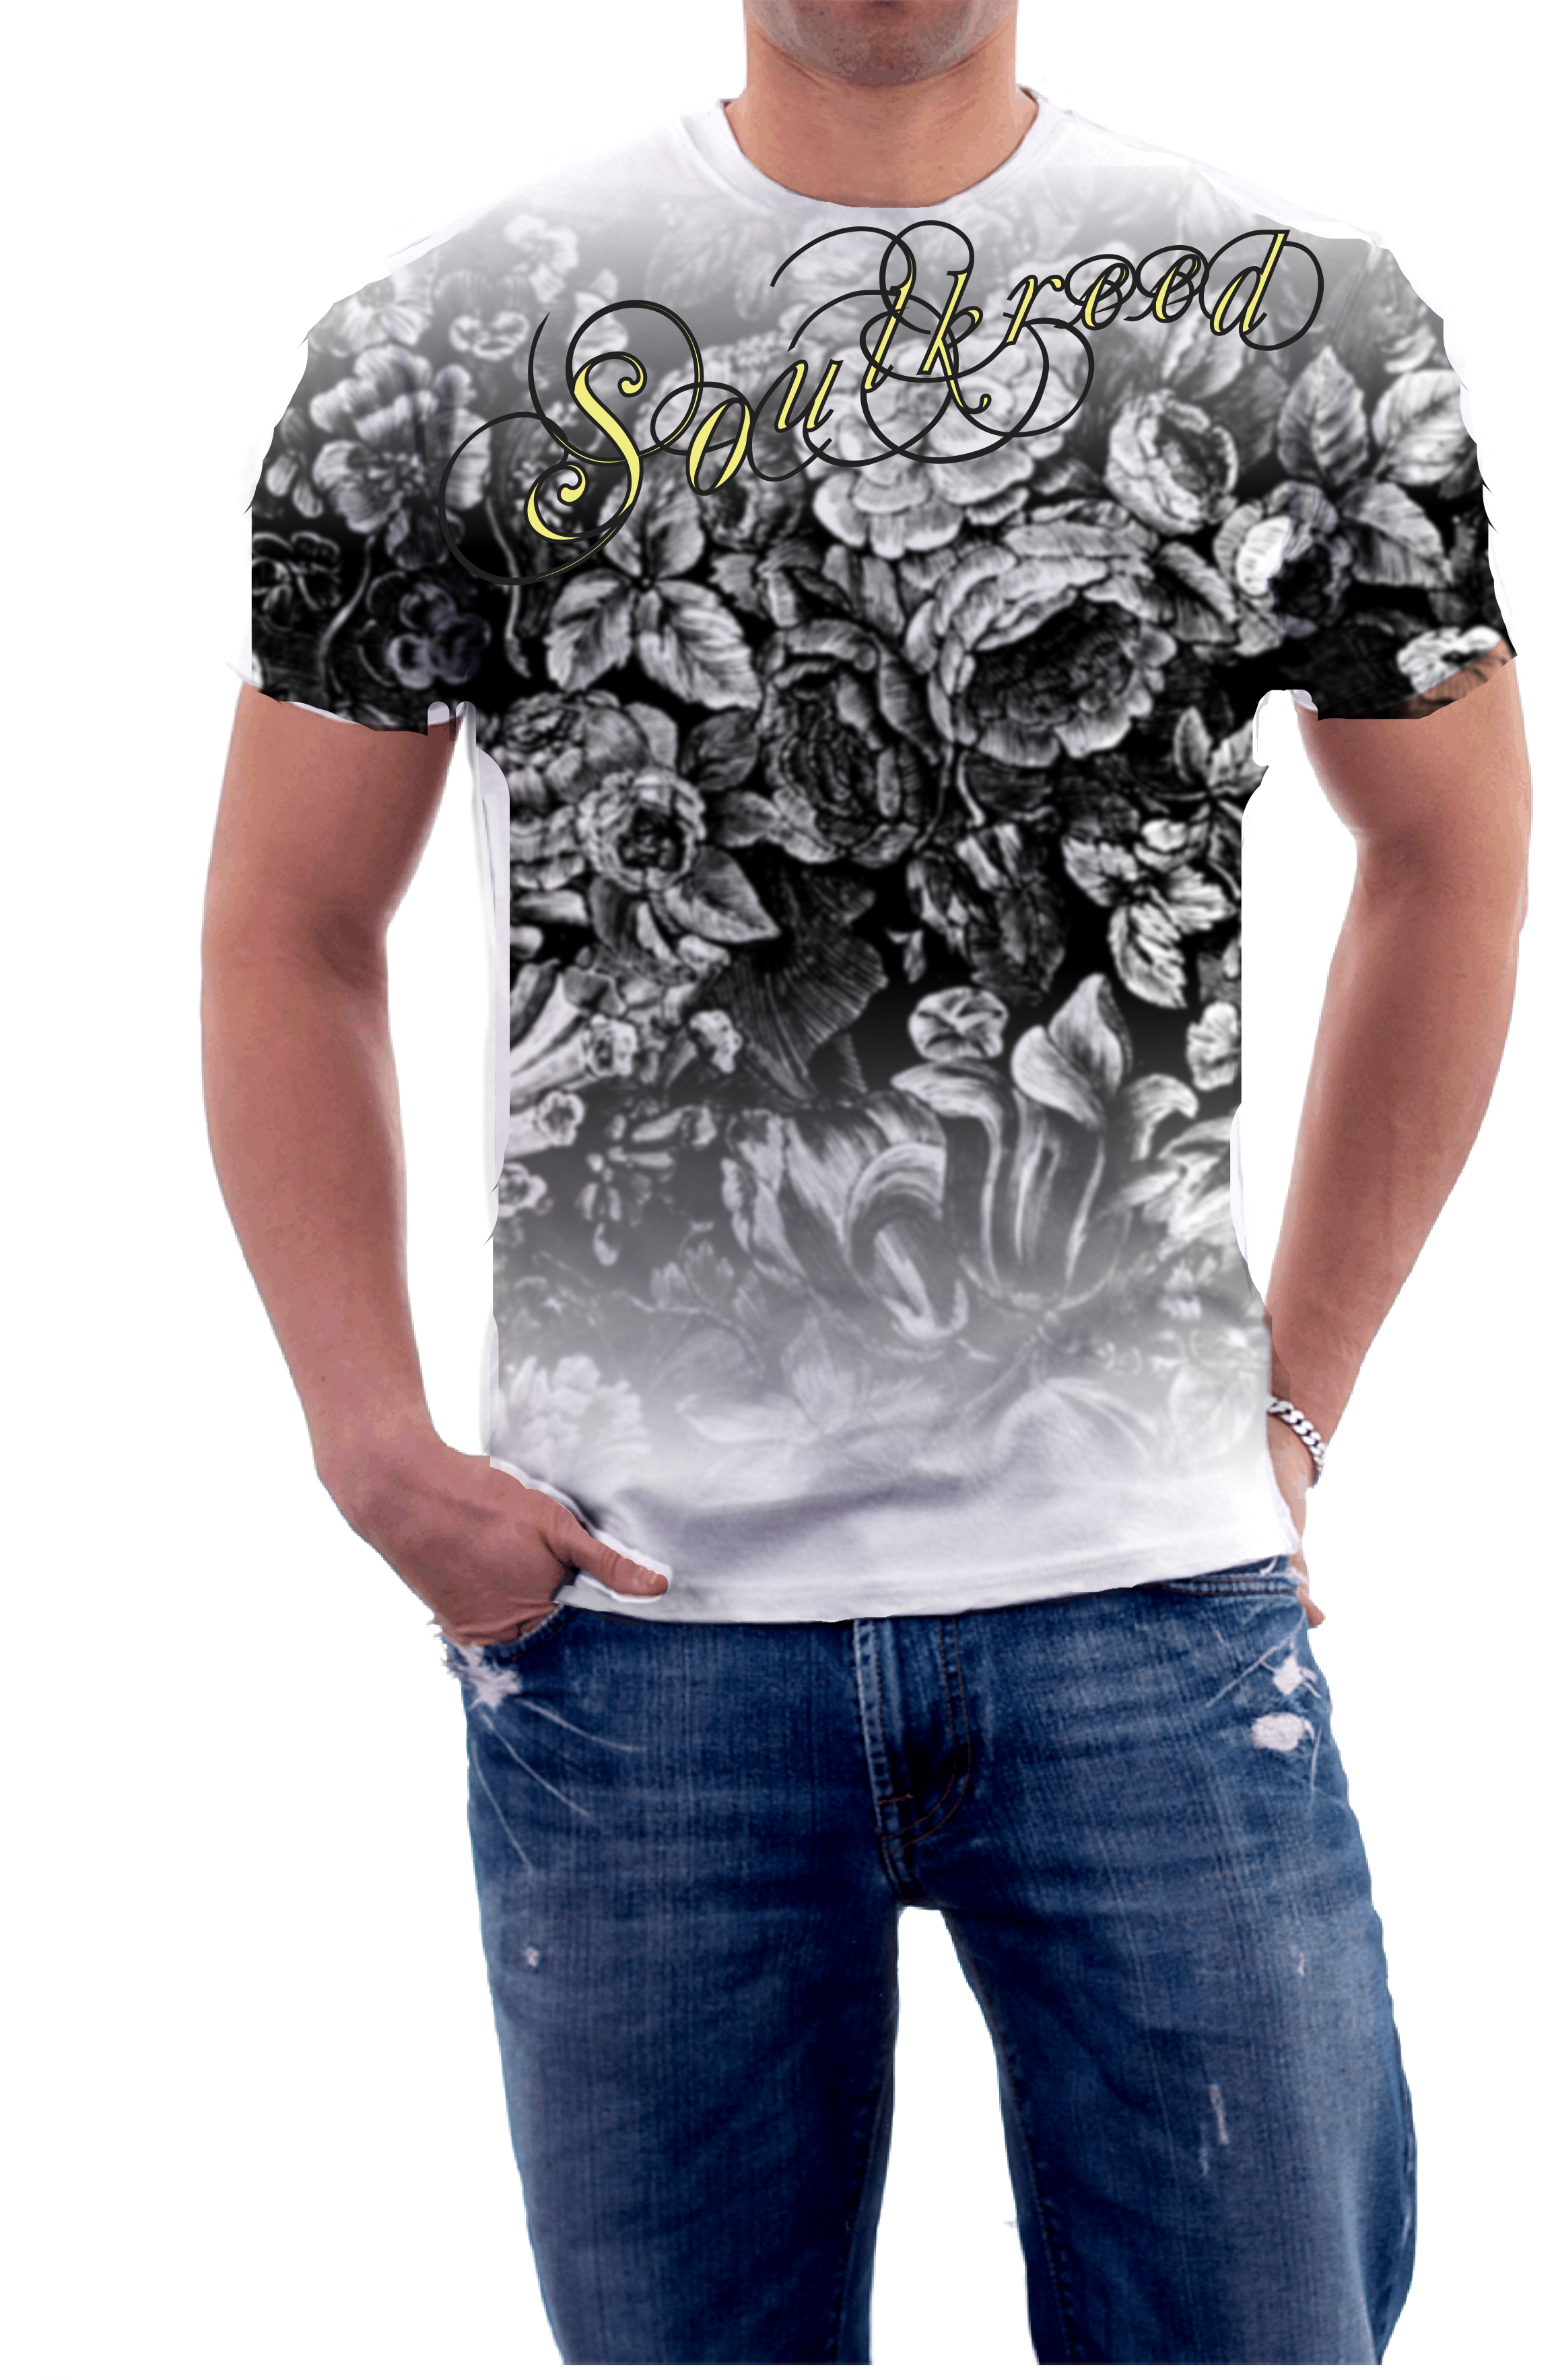 Floral Design.This will be available this xmas. 100% cotton, short sleeve  tshirt. Mens tattoo tshirt, mens fashion, affliction, mens tshirts, ...